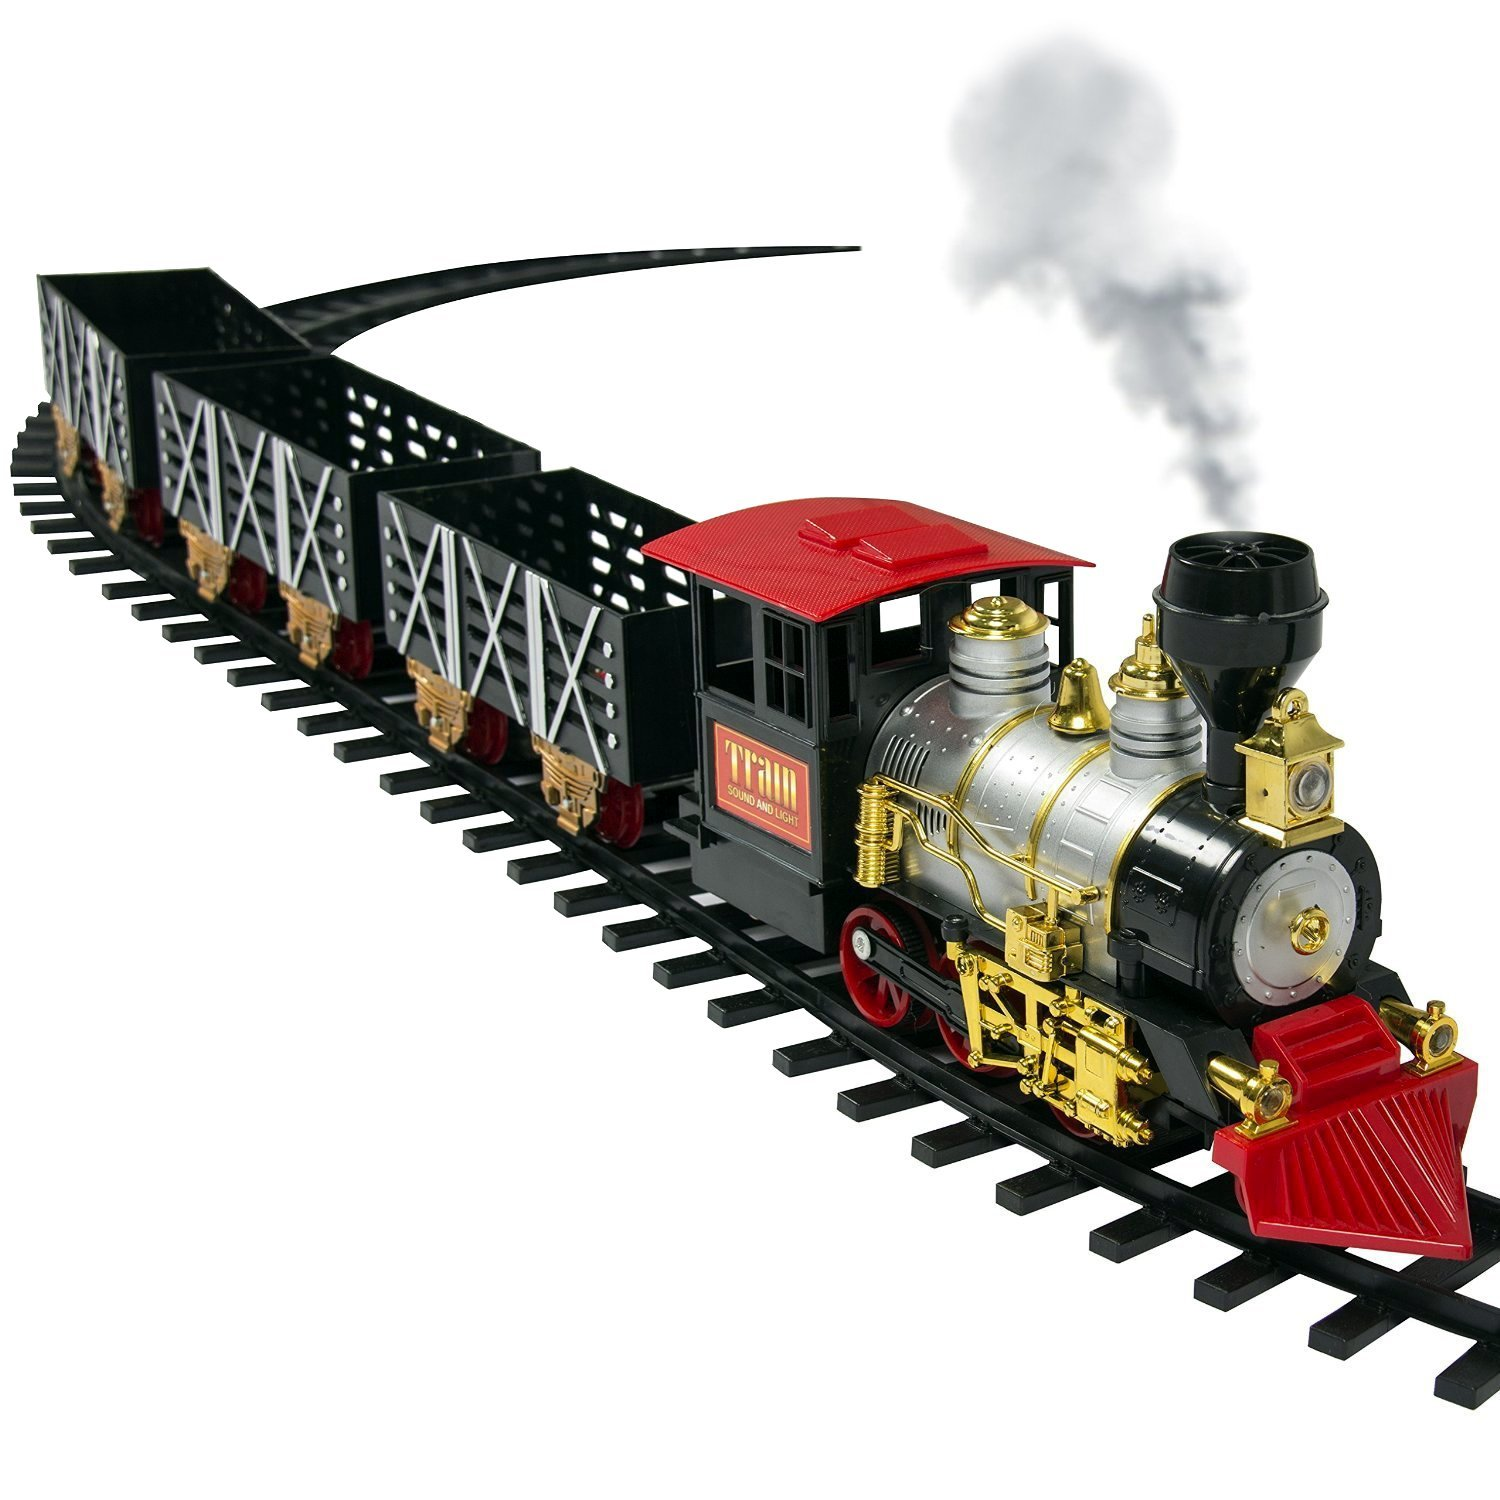 VT Classic Train Set For Kids With Real Smoke, Music, and Lights Battery Operated Railway Car Set